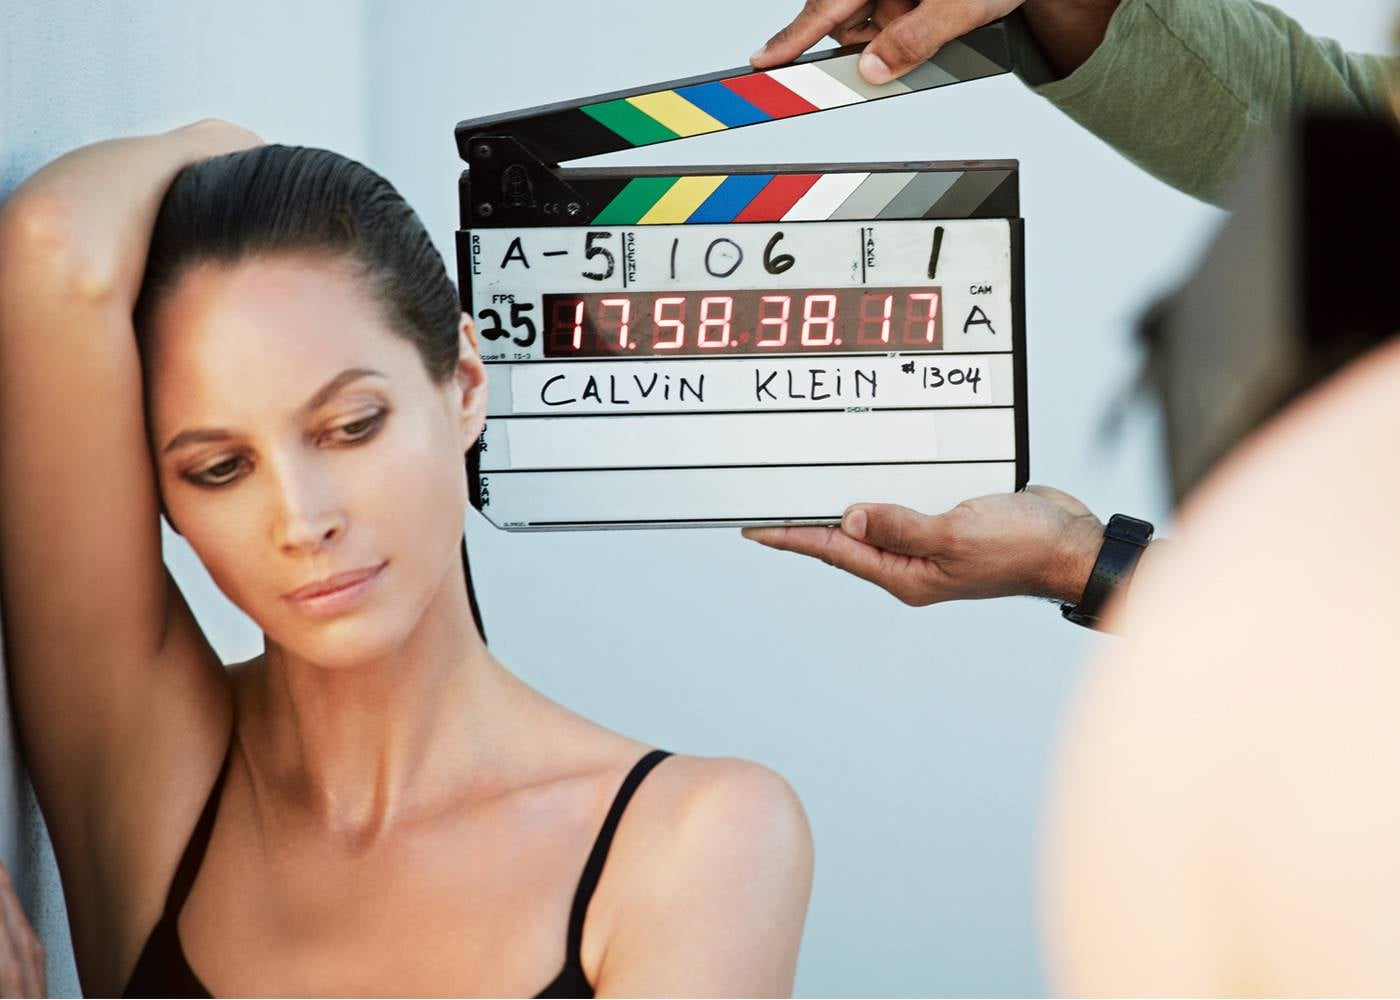 Christy Turlington Burns will return to Calvin Klein as the face of its Fall 2013 Underwear ad campaign. It was shot by photographer Mario Sorrenti in Vieques, Puerto Rico, and is slated to debut in the September magazine issues. Source: Facebook user Calvin Klein